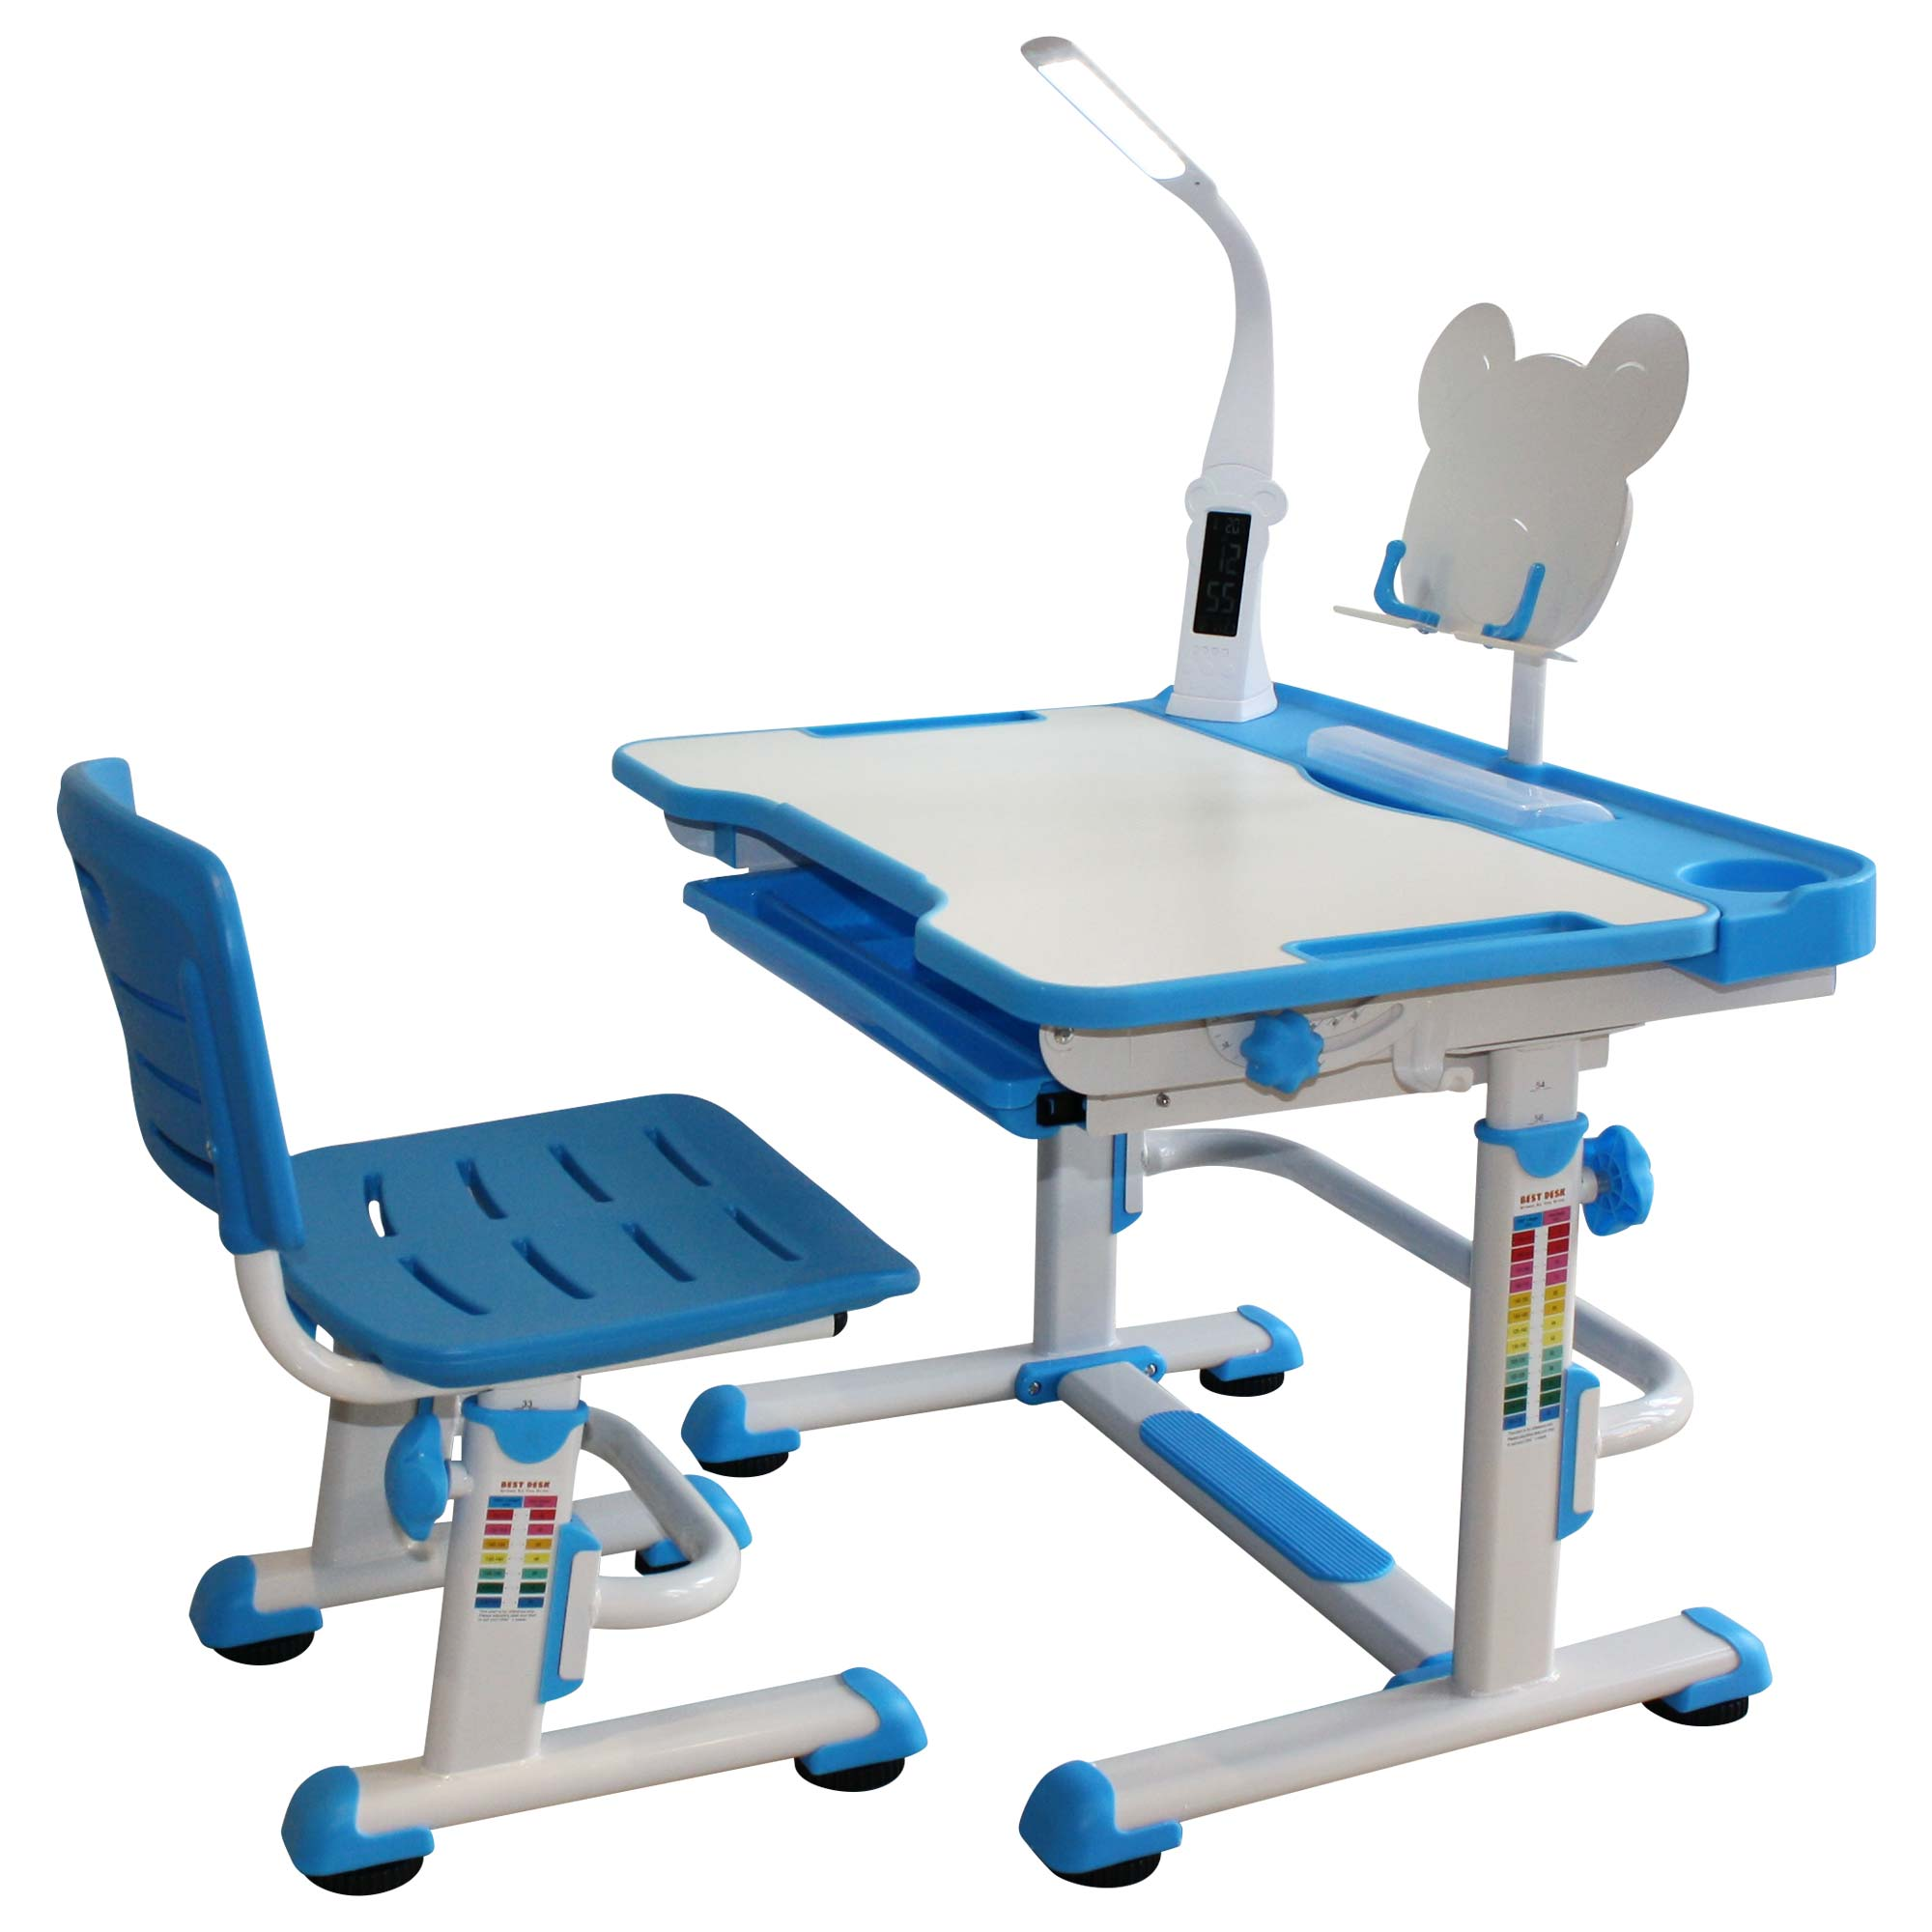 school-desk-for-kids-study-table-height-adjustable-children-desk-Sprite-Blue-Desk-2018-Model-01